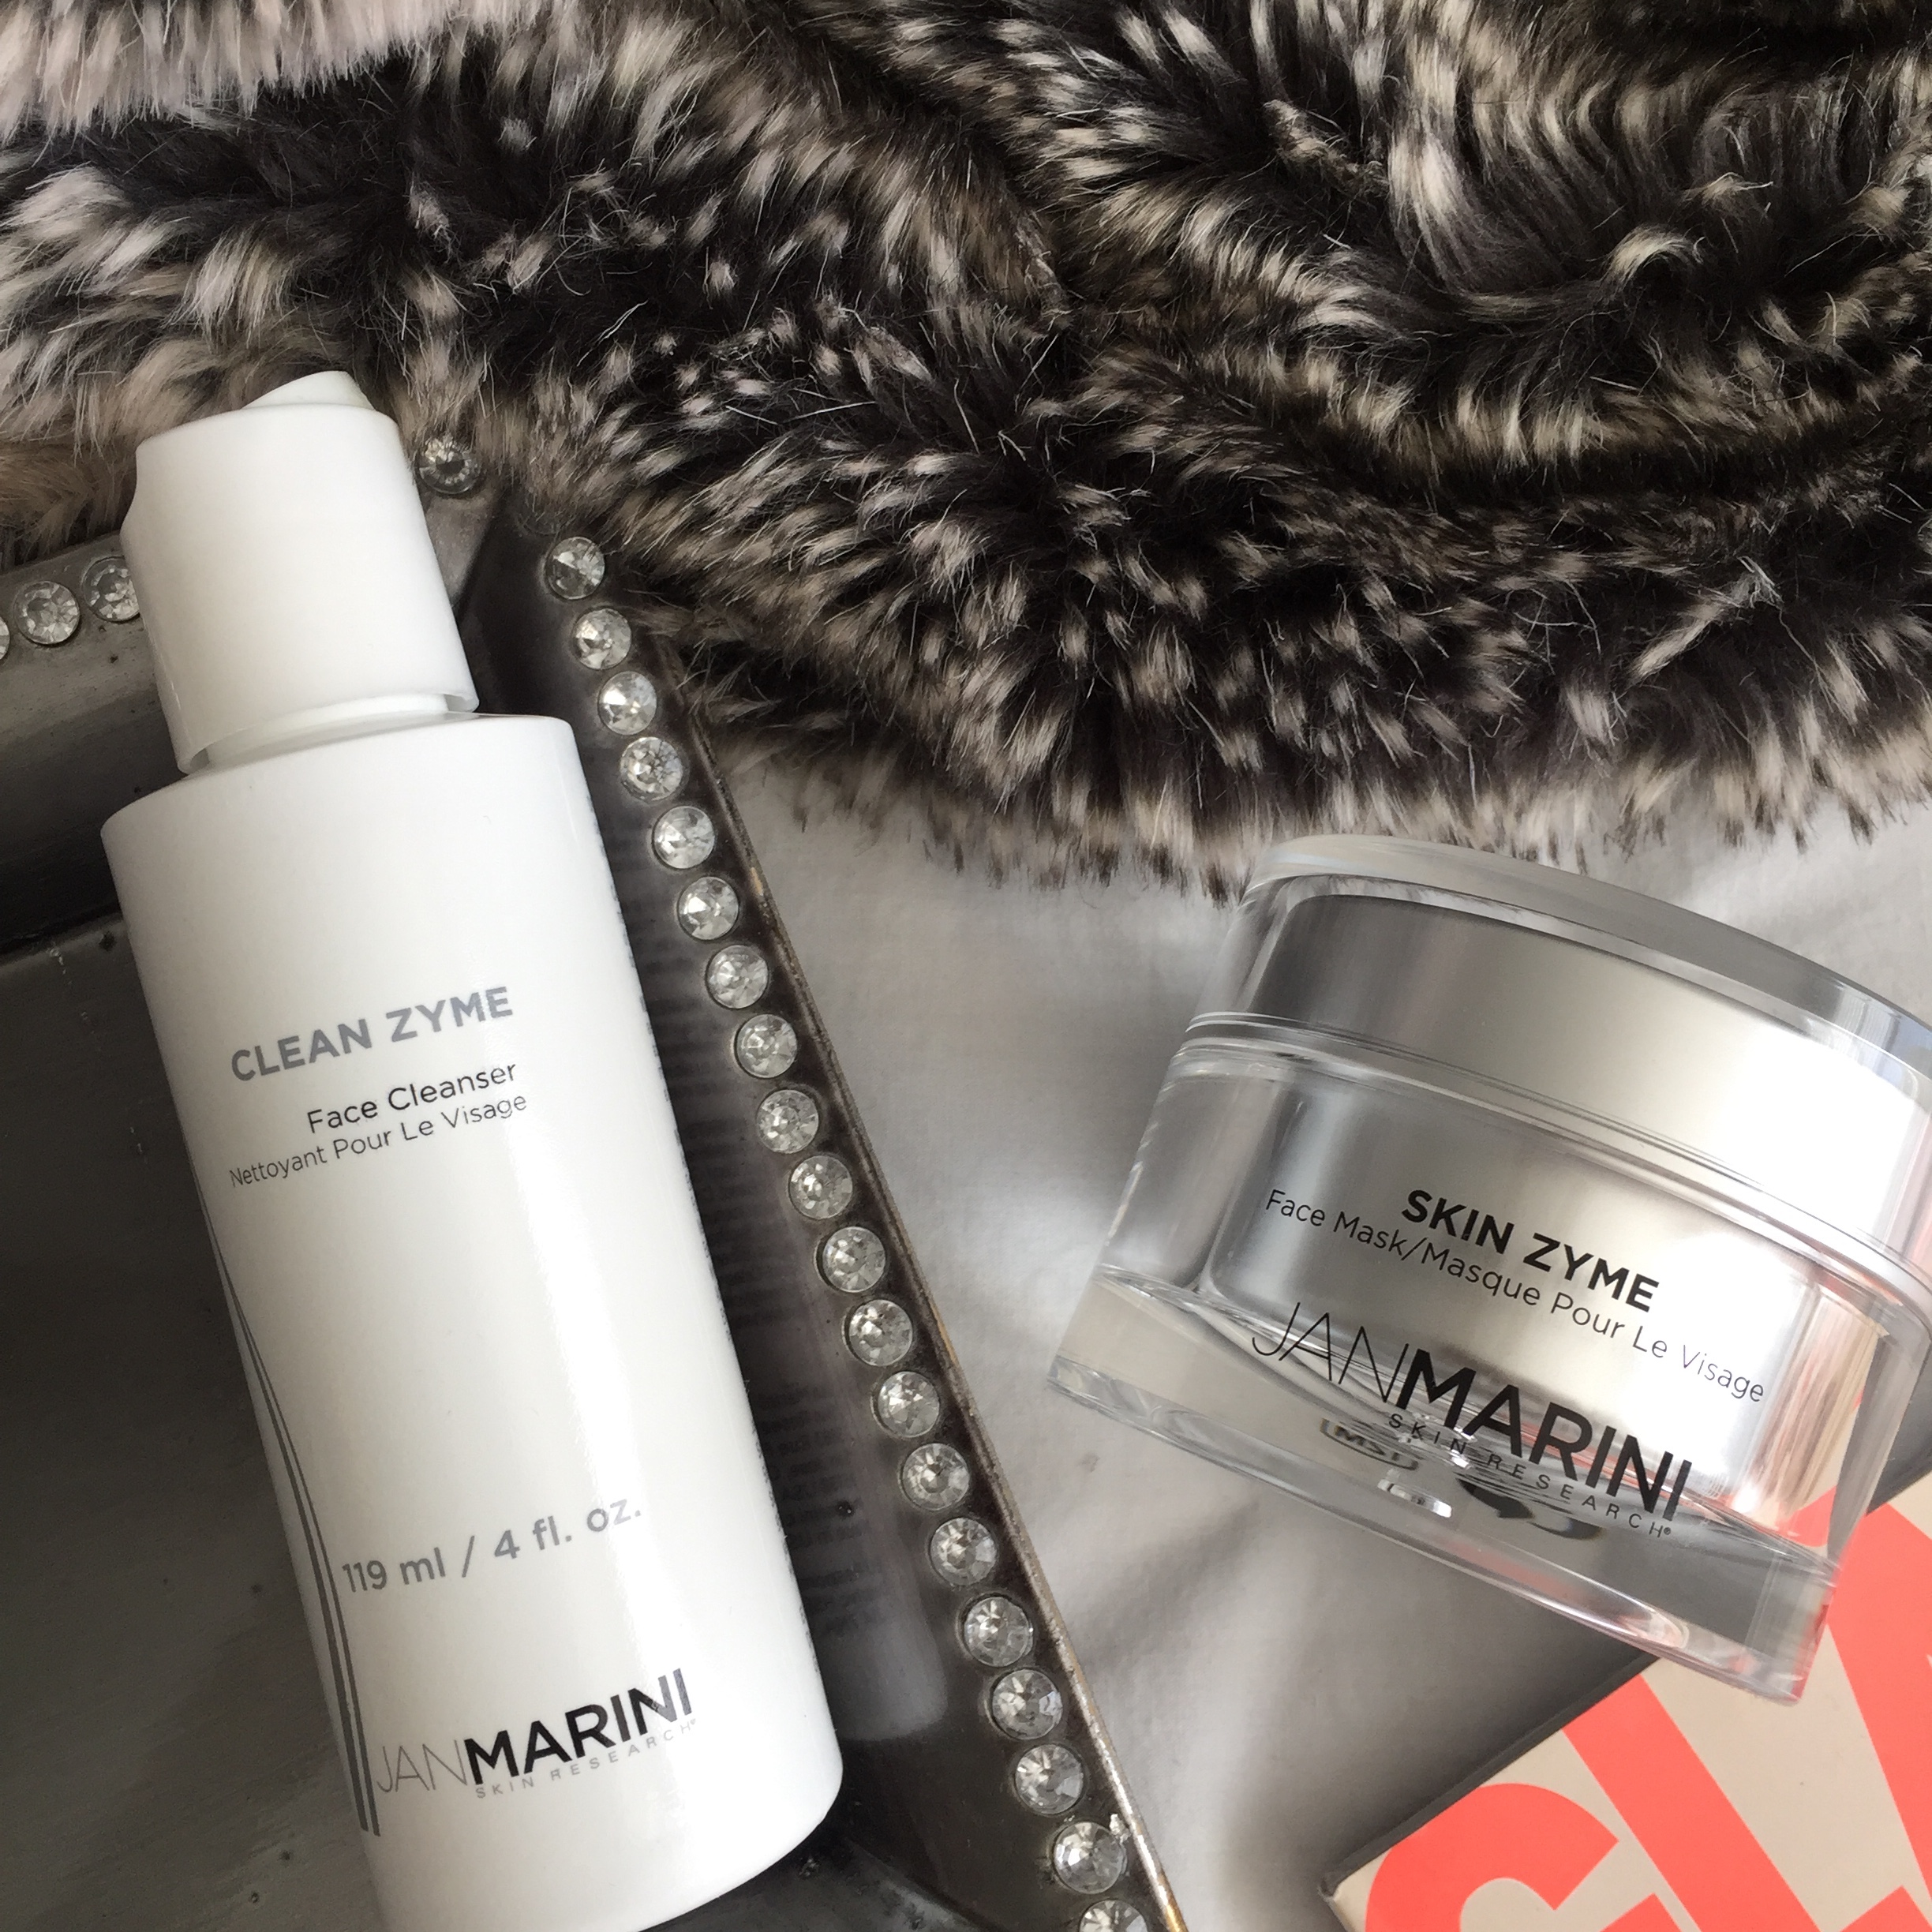 Jan Marini Clean Zyme and Skin Zyme Duo